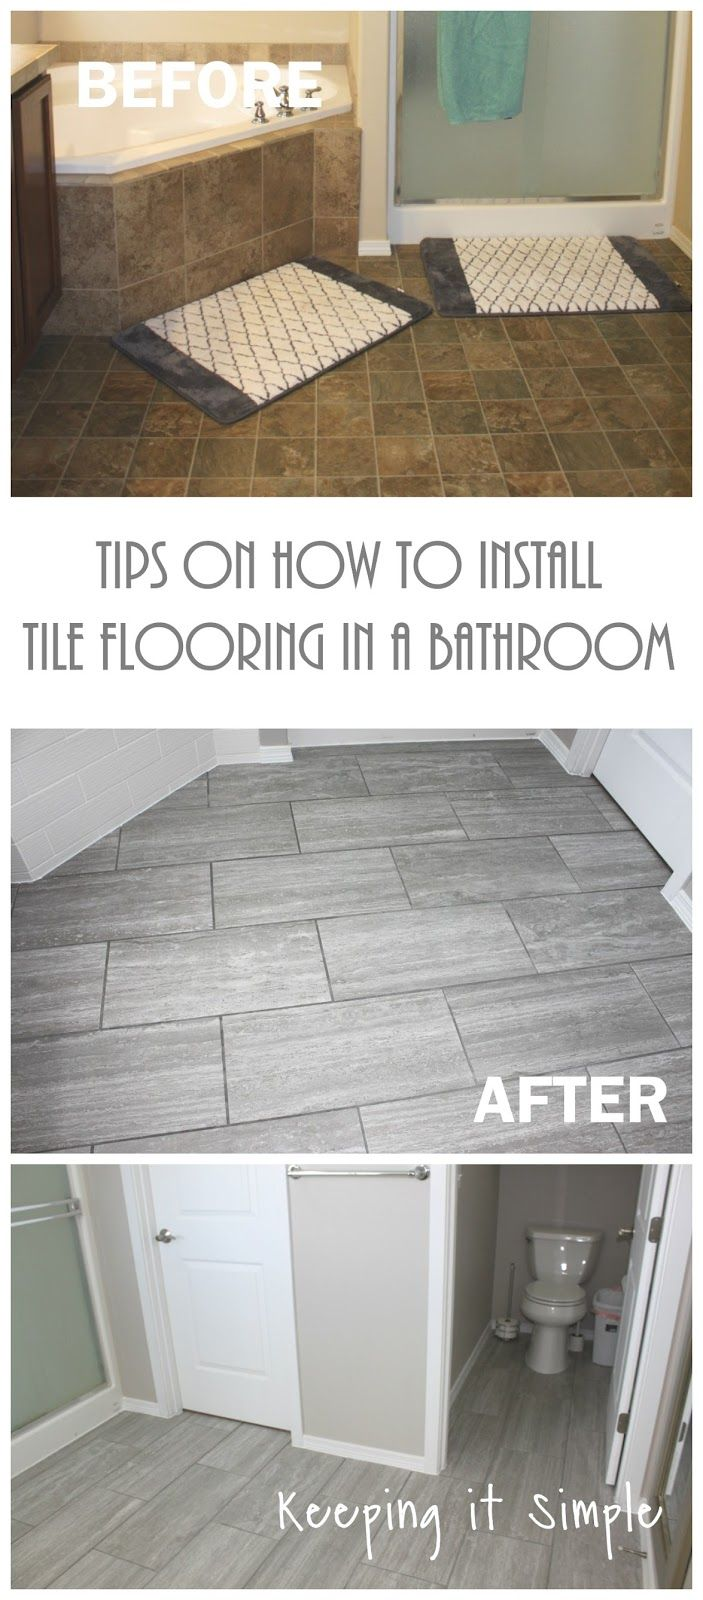 Tips on how to install tile flooring in a bathroom using Ridgemont 12x24 silver porcelain tiles